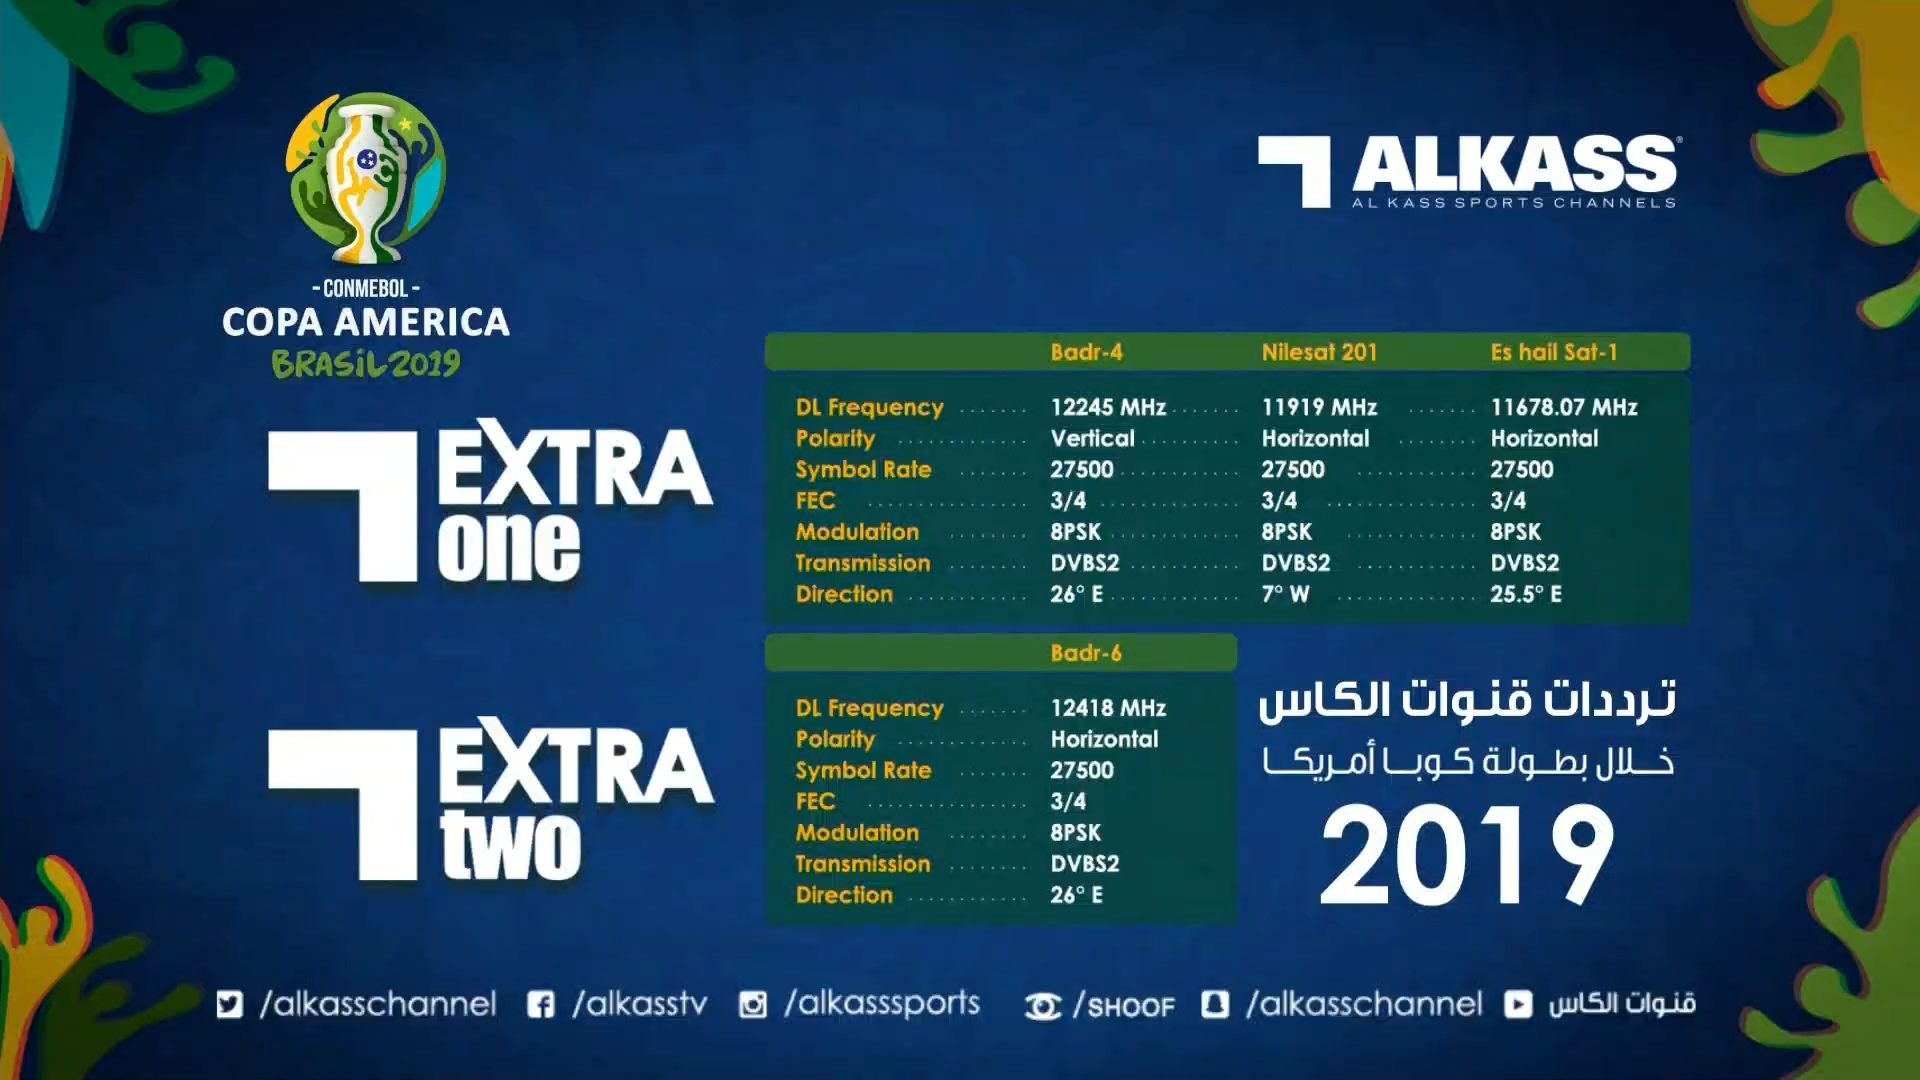 Al Kass at Nilesat and Arabsat Badr — قنوات الكأس